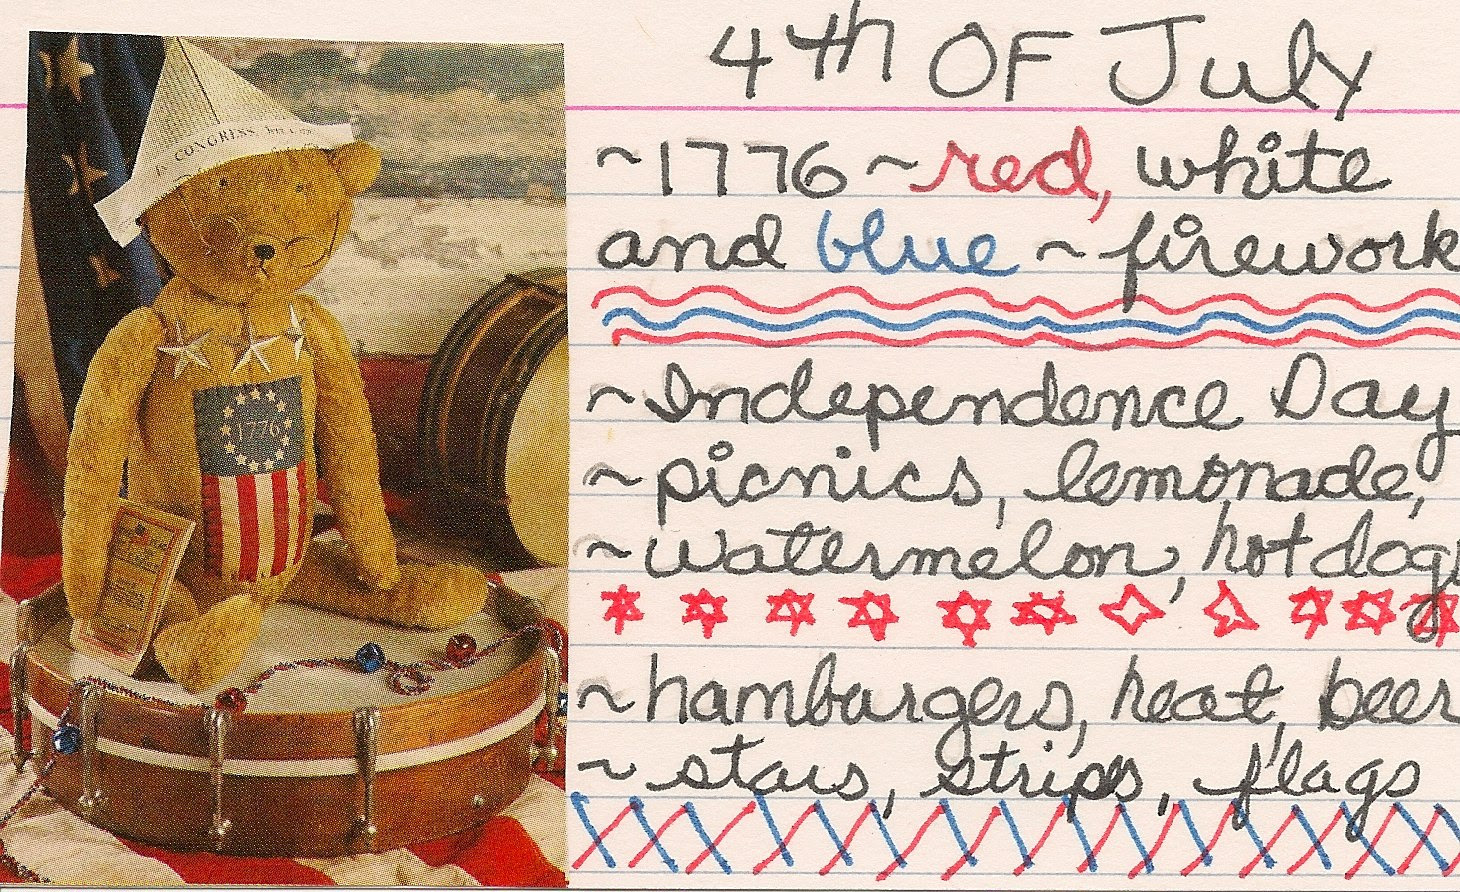 ICAD- 4th of July